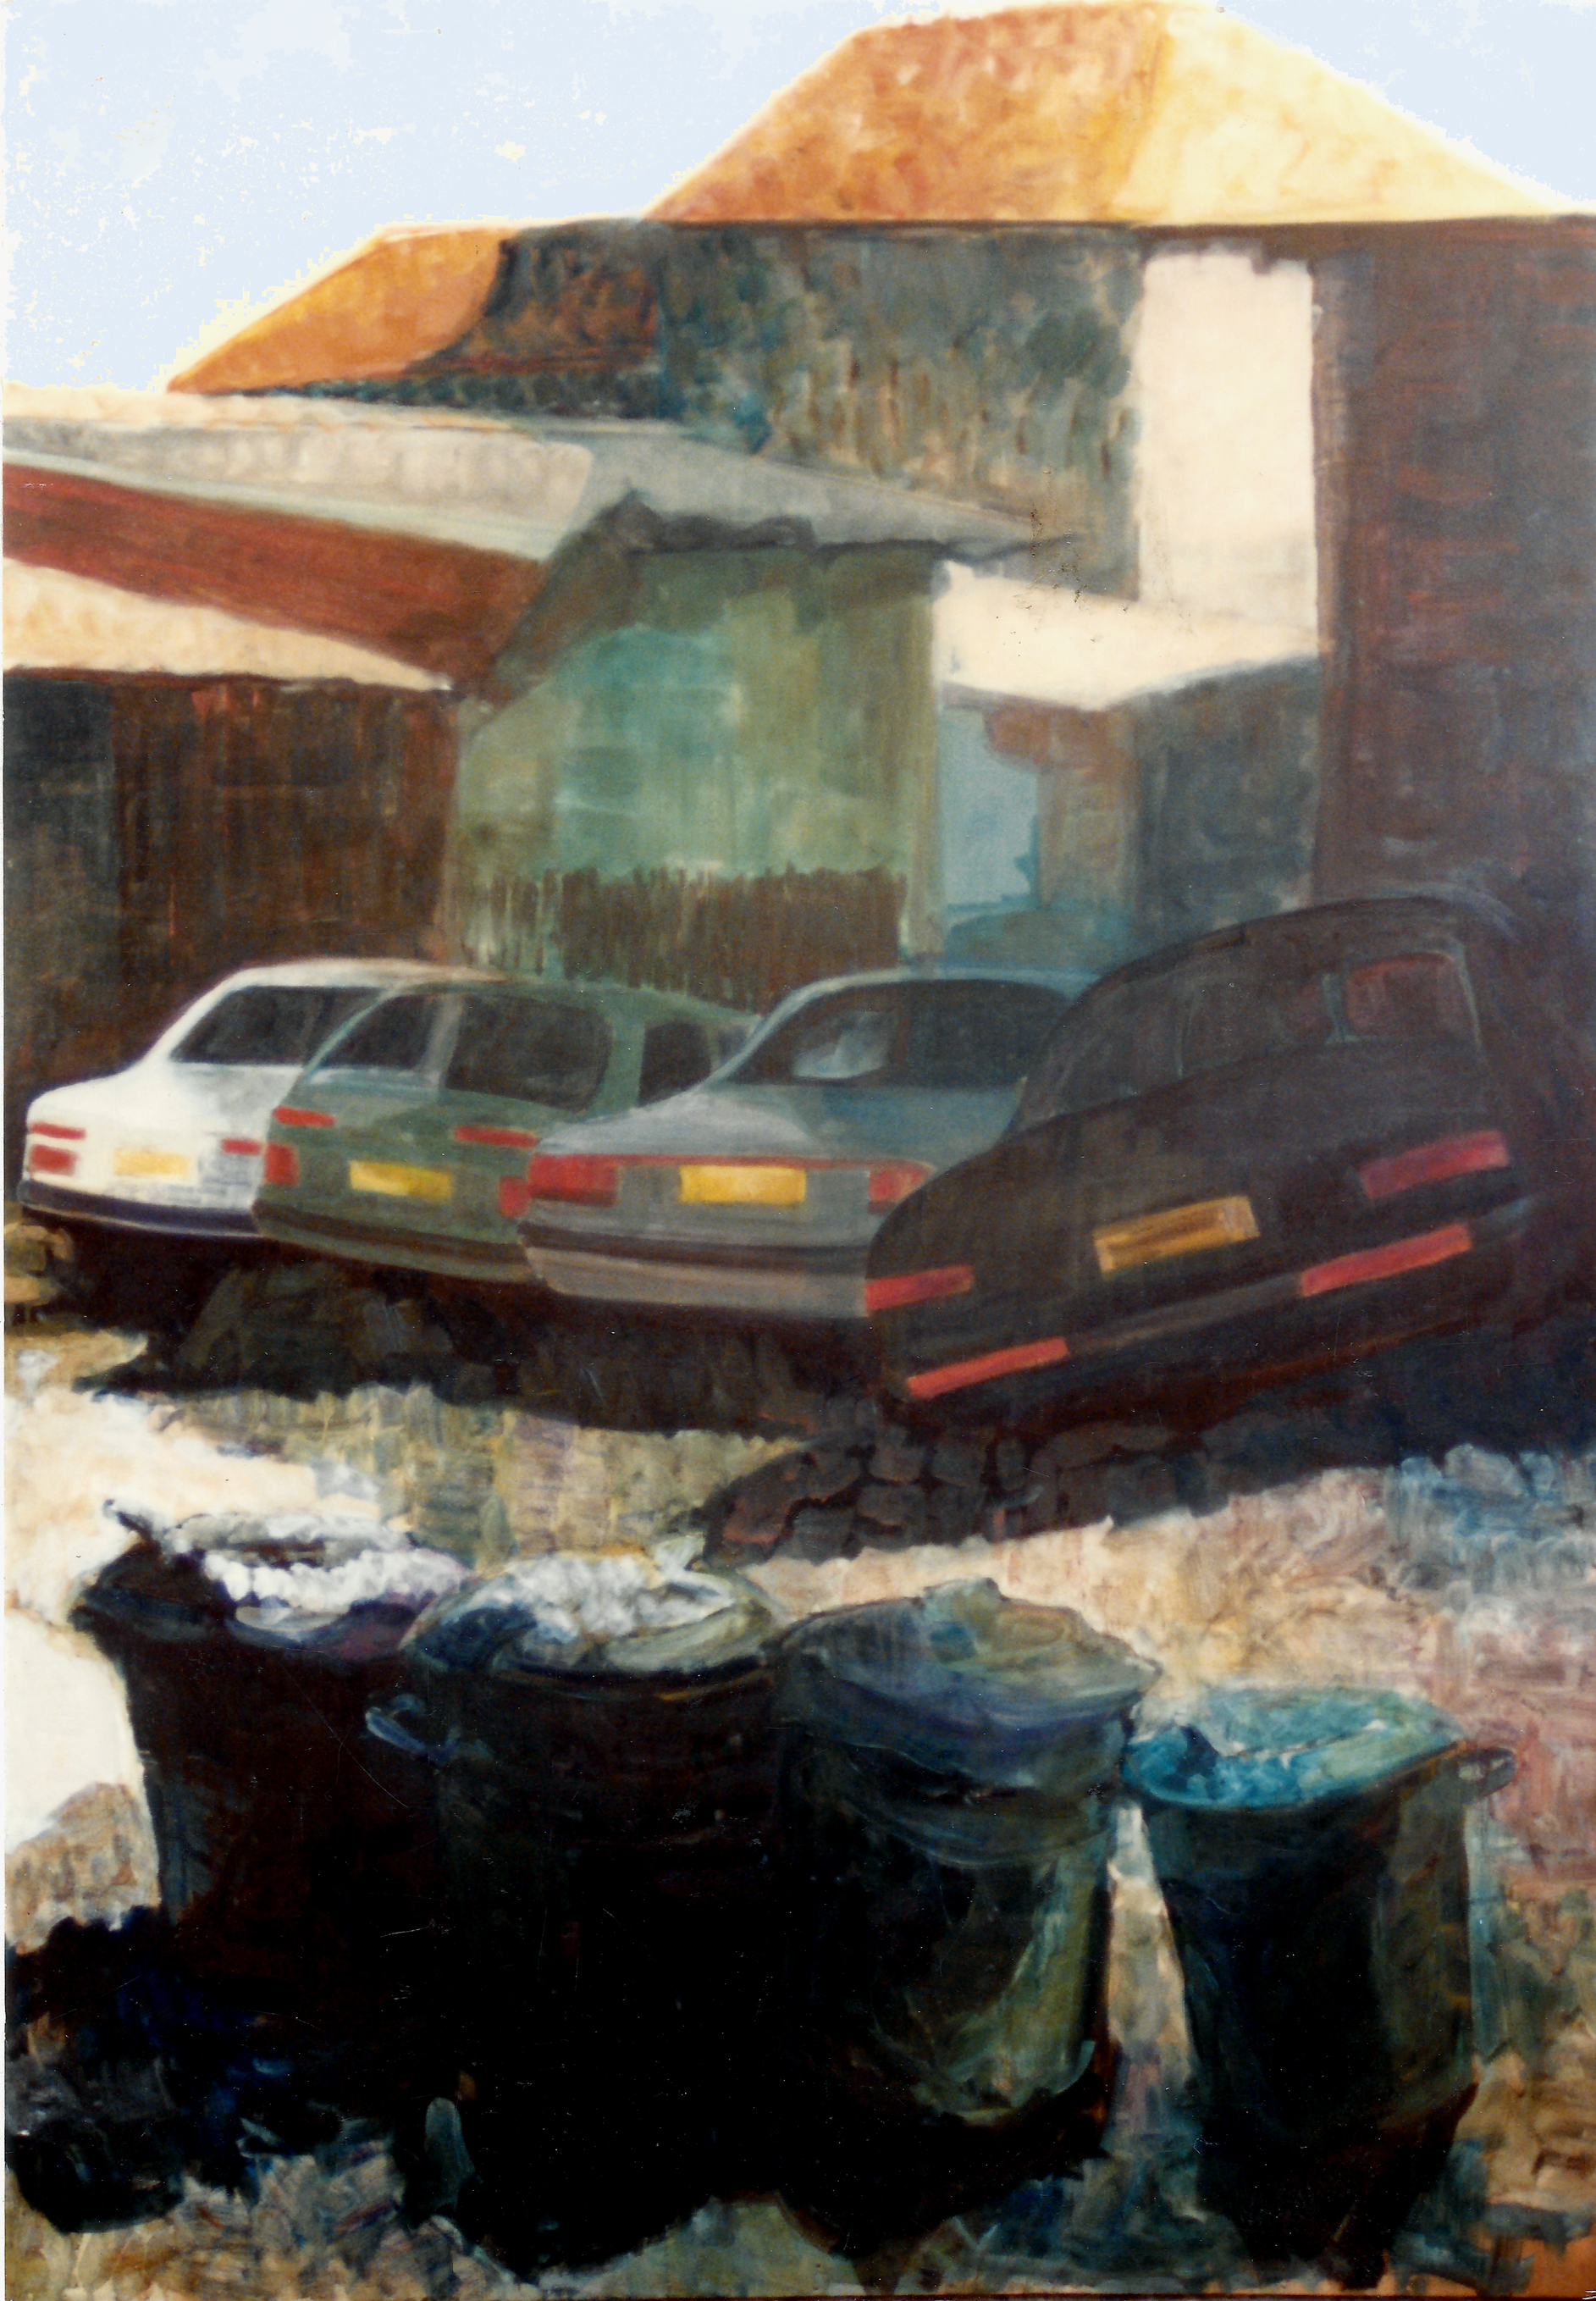 Trash, Cars, Buildings - 1991